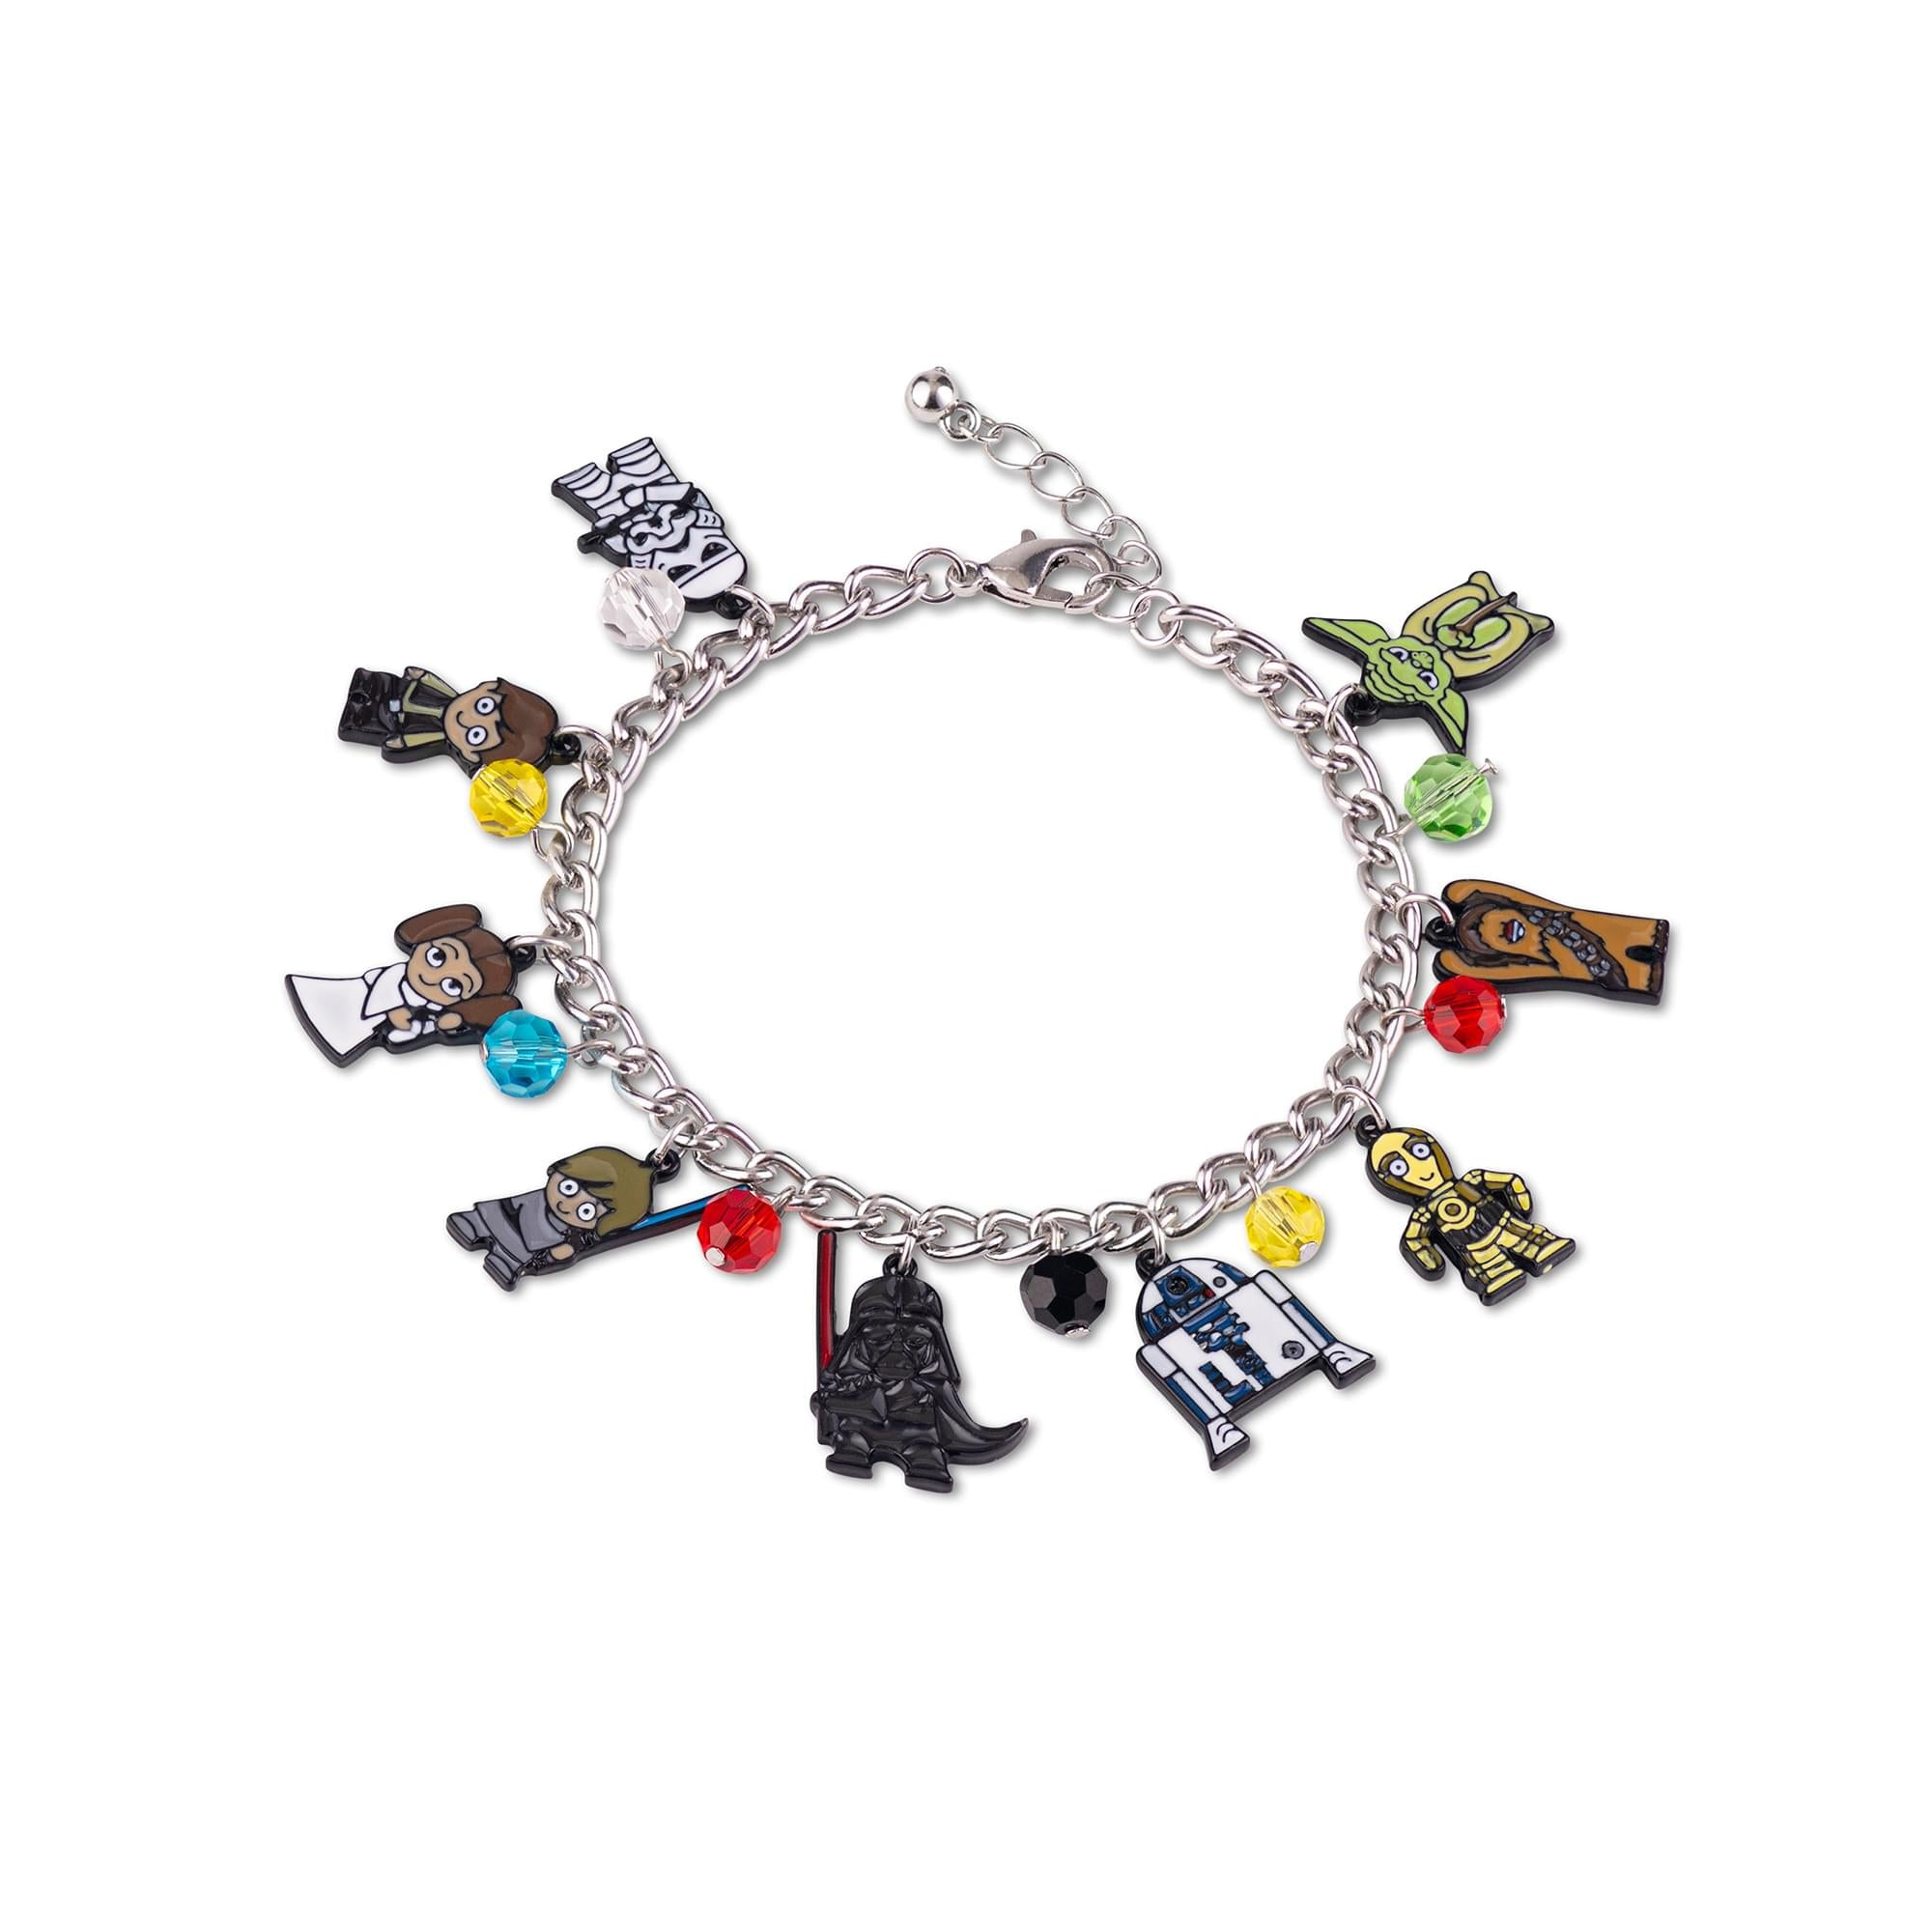 Star Wars Cute 15mm Chibi Characters Pendant Enamel Charms Bracelet Jewelry